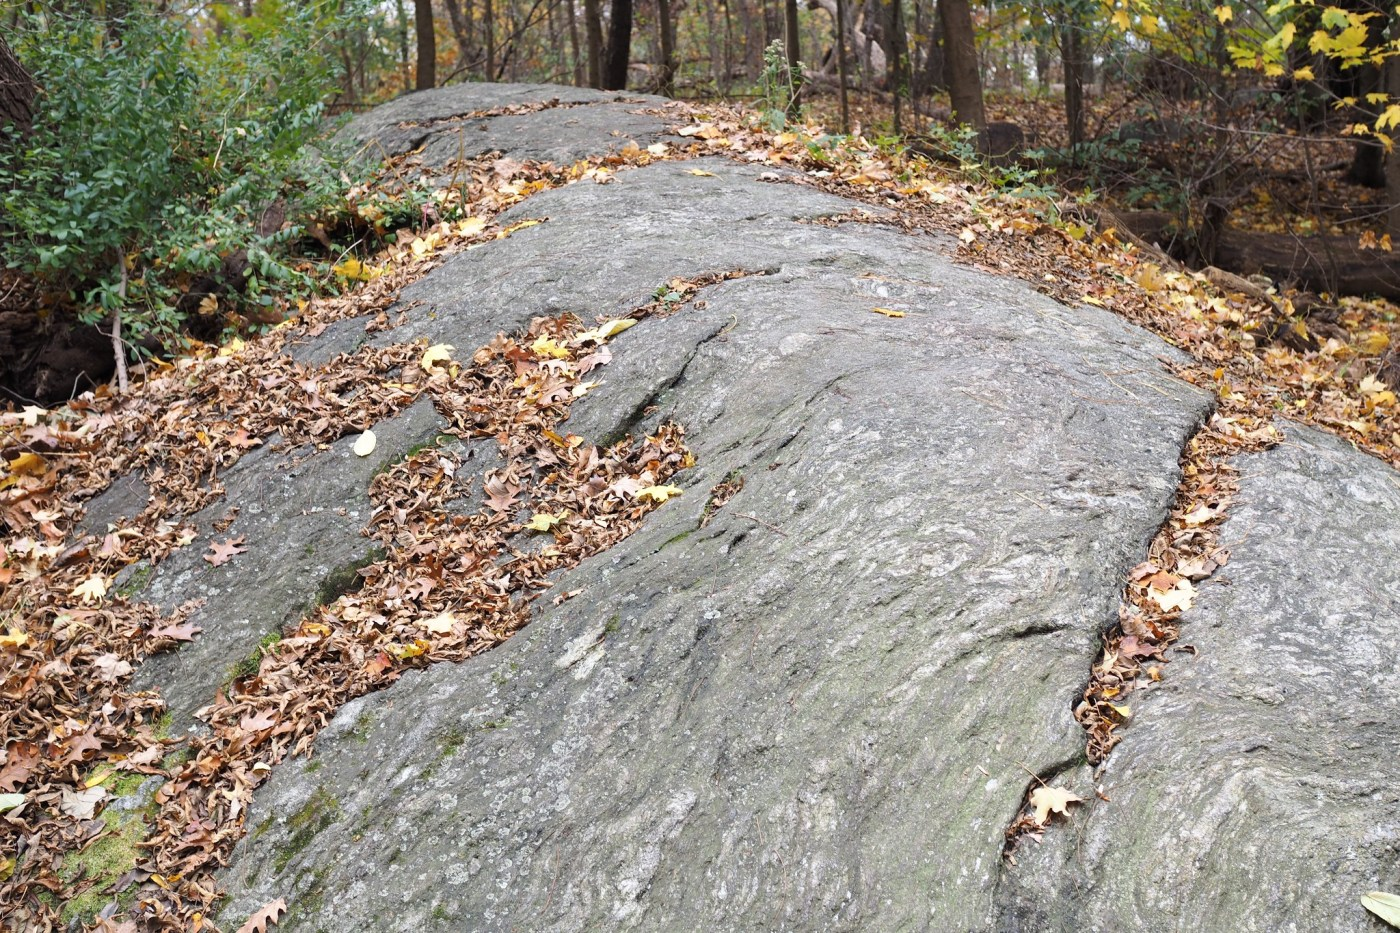 Whale Back Rock at Inwood Hill Park